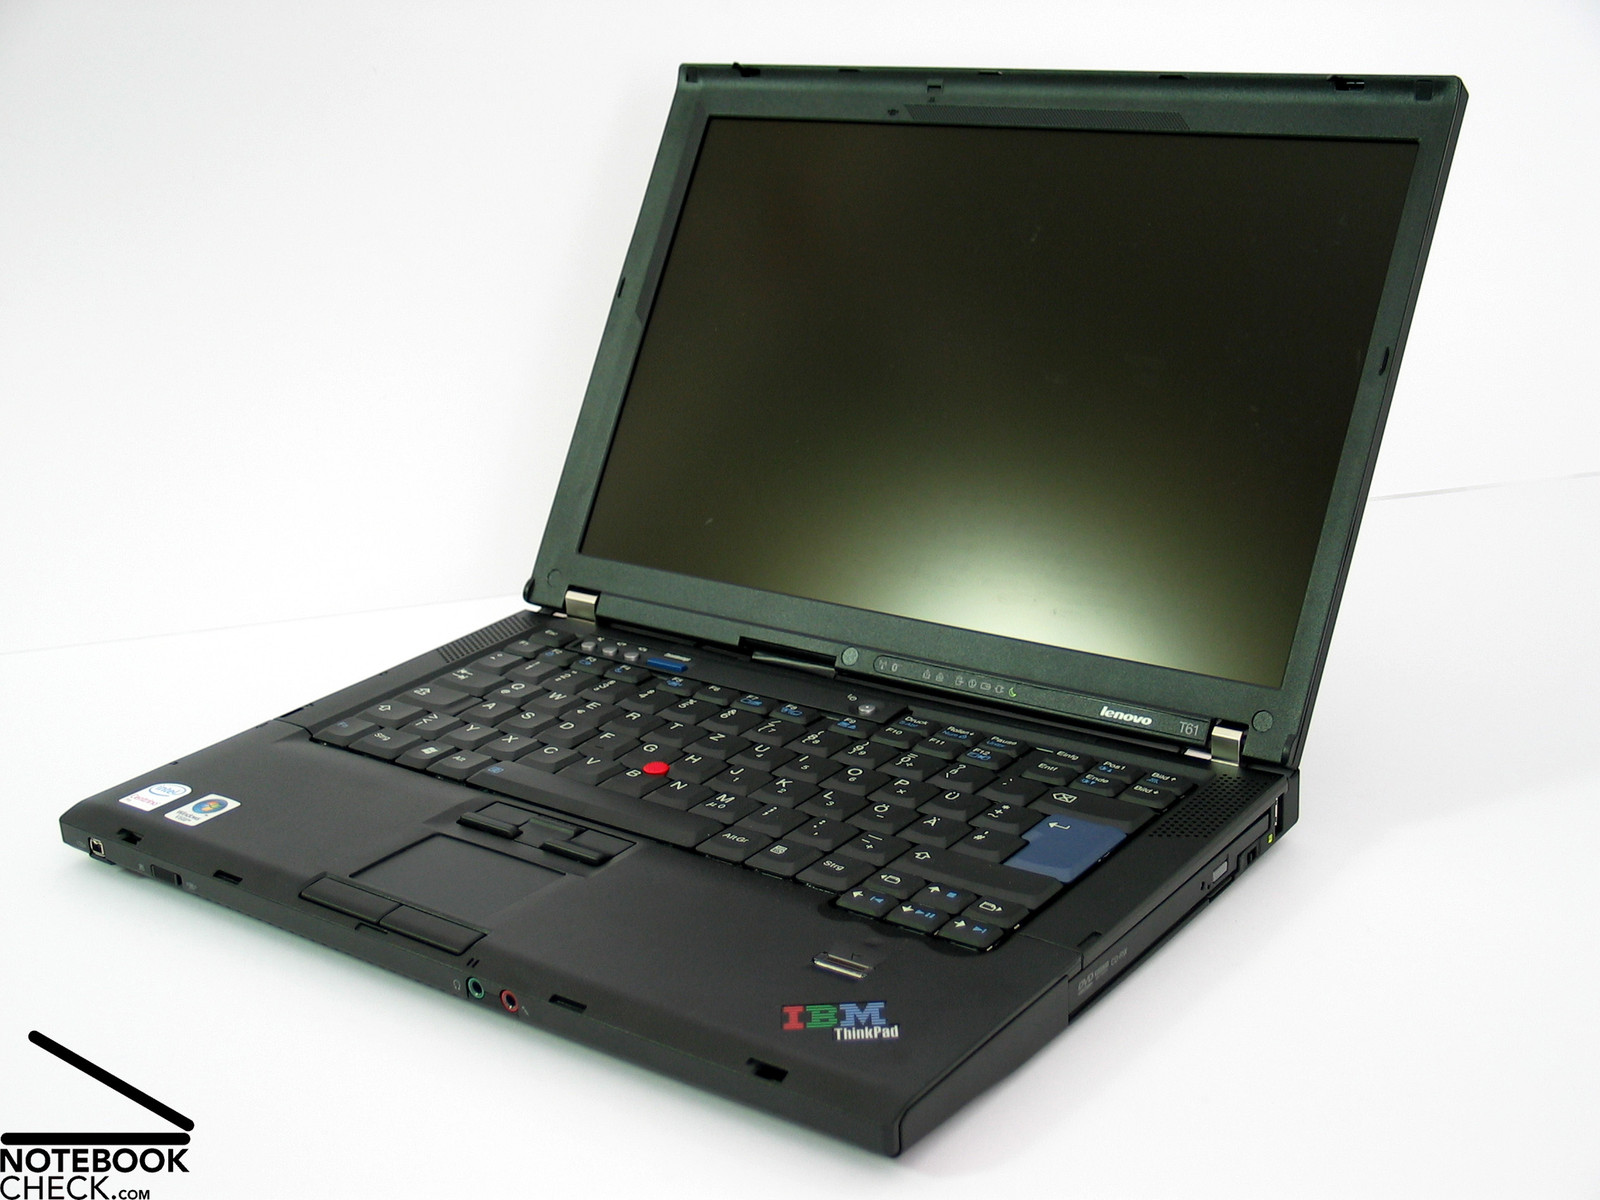 Lenovo ThinkPad R50e TrackPoint Windows Vista 64-BIT